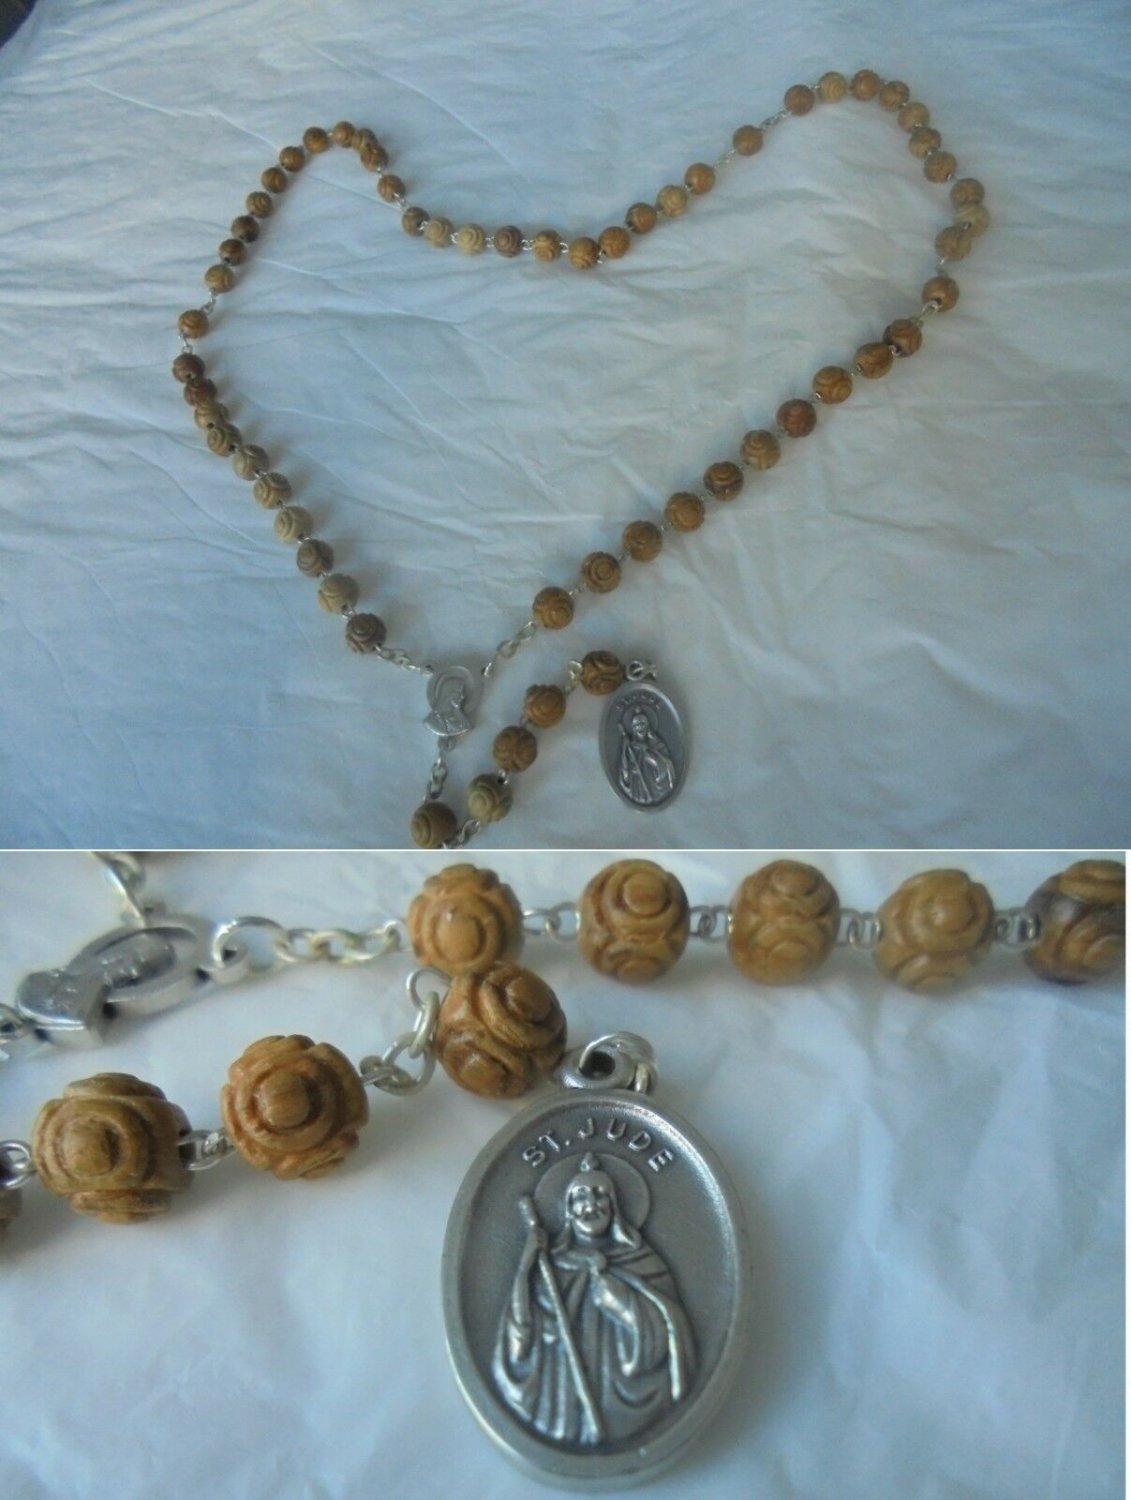 ROSARY Necklace of SAINT JUDE in wood Original 1980s